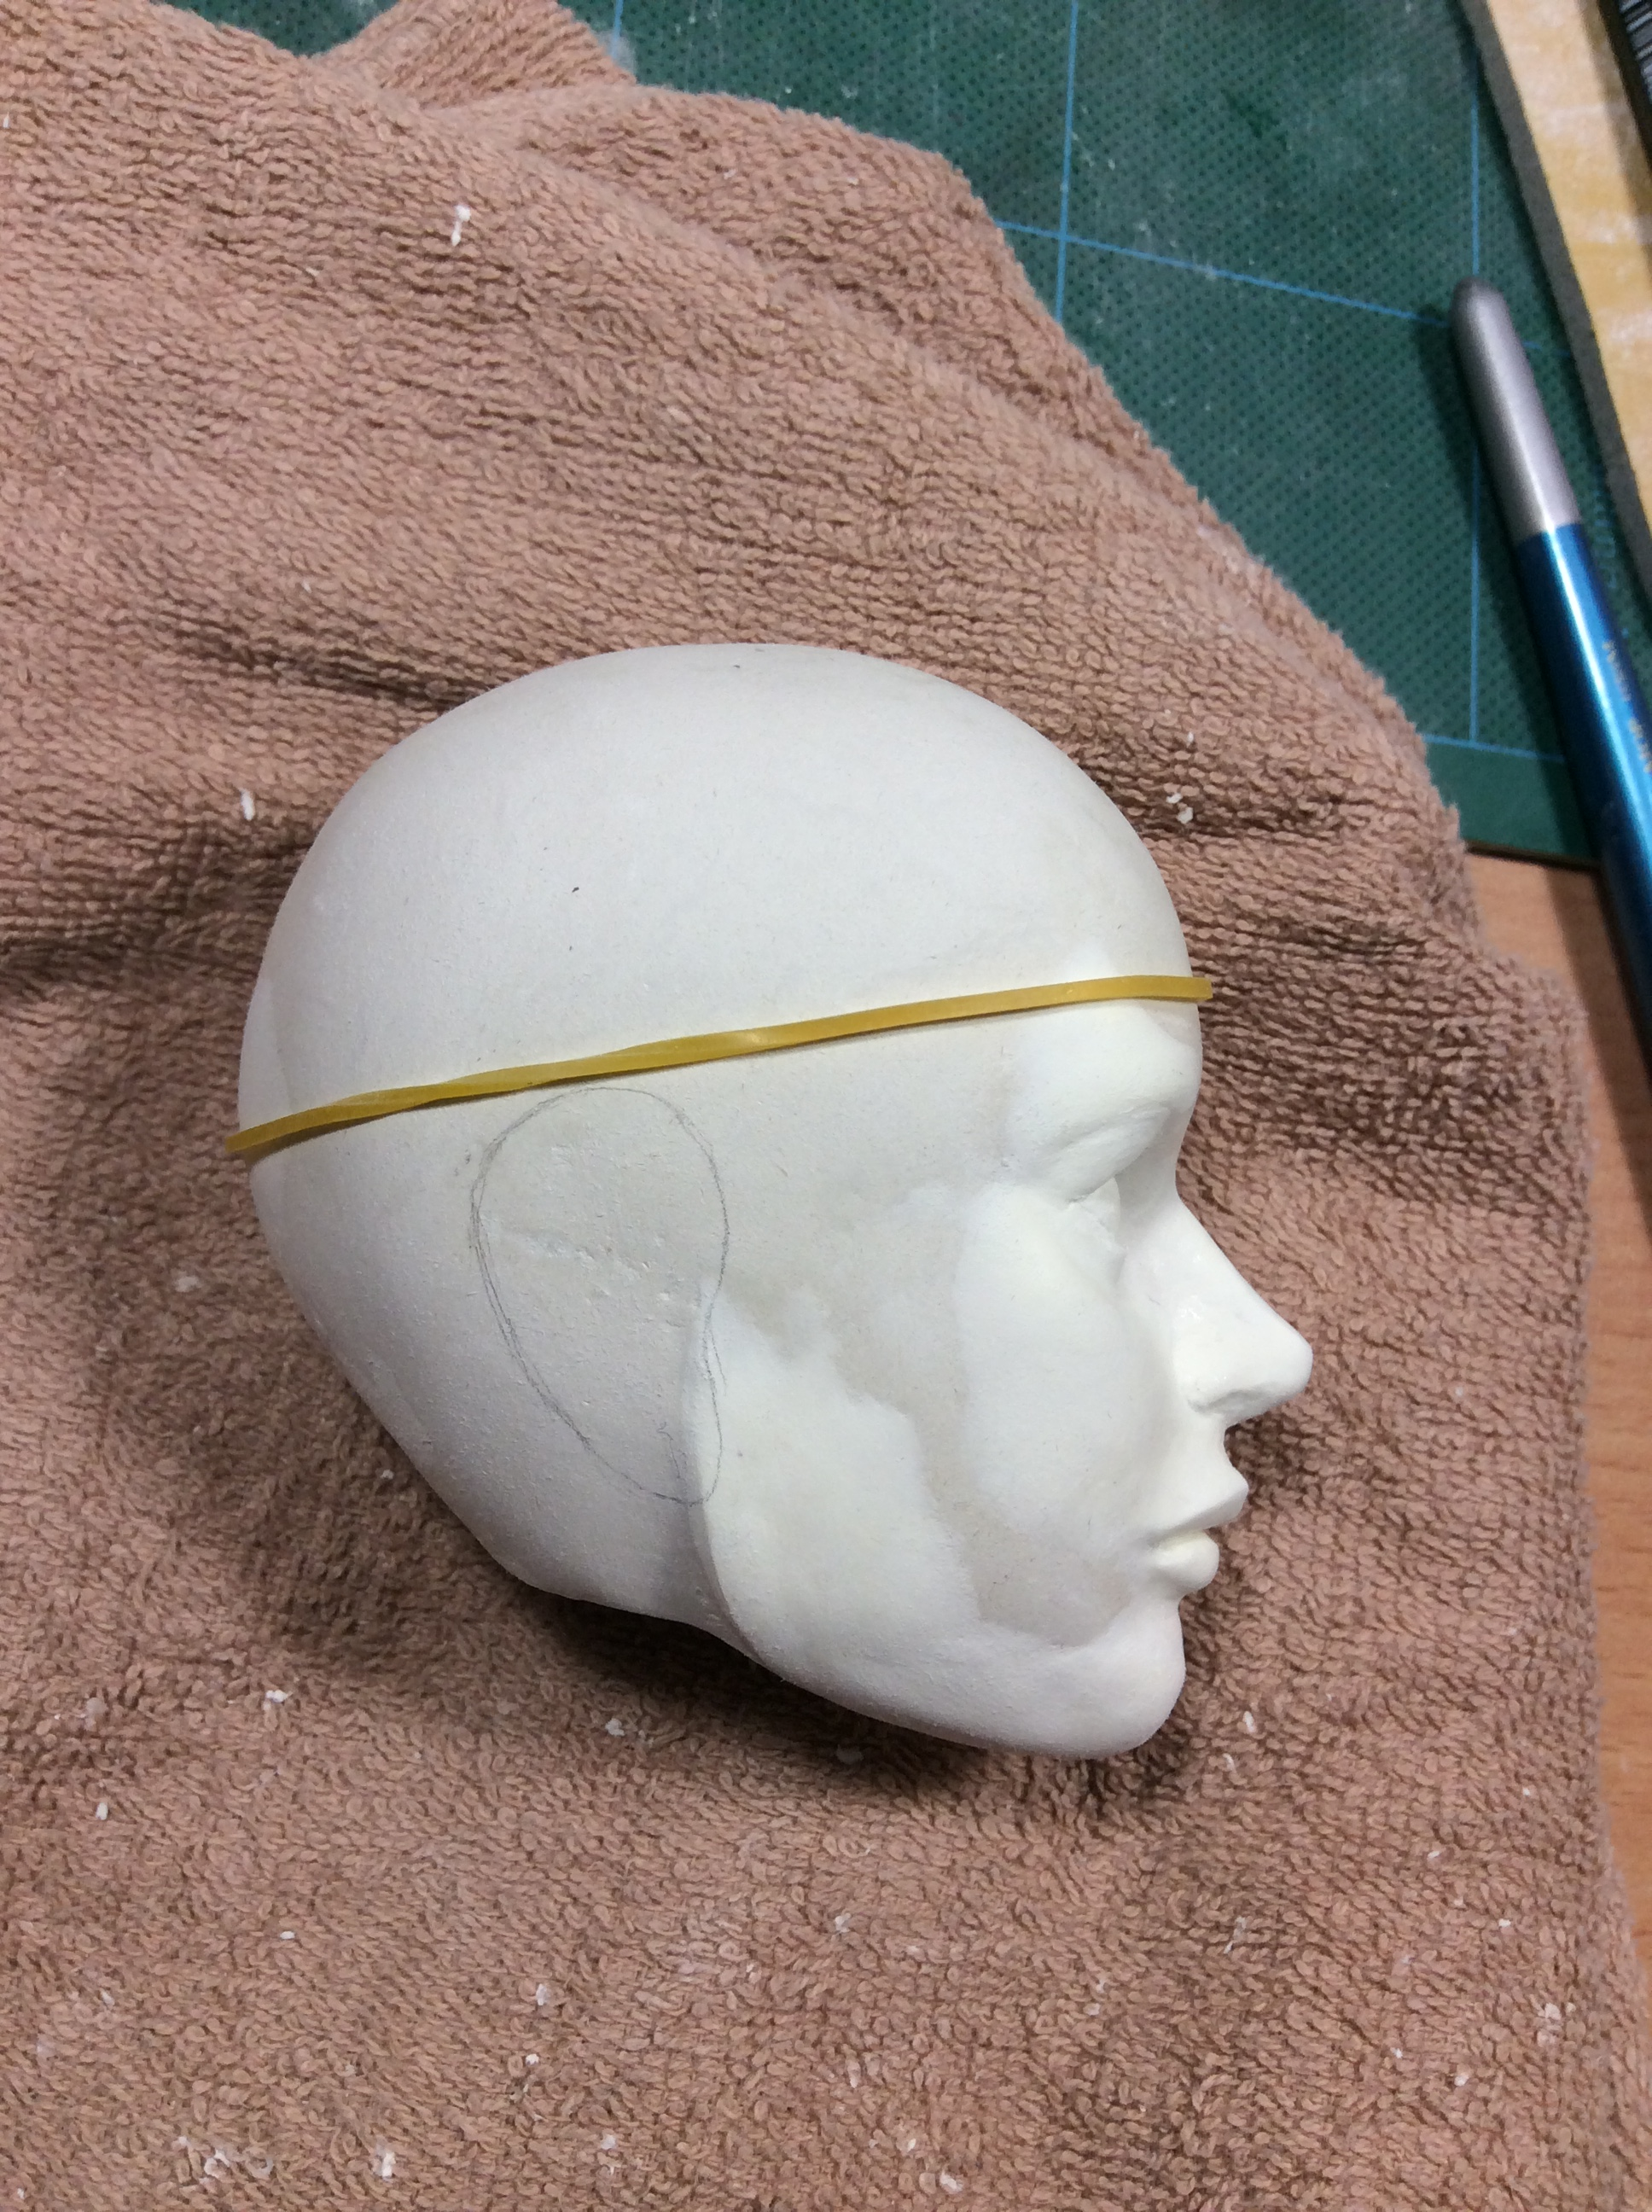 jemse---my-first-doll-head-making-progress-diary-part-3_32293333251_o